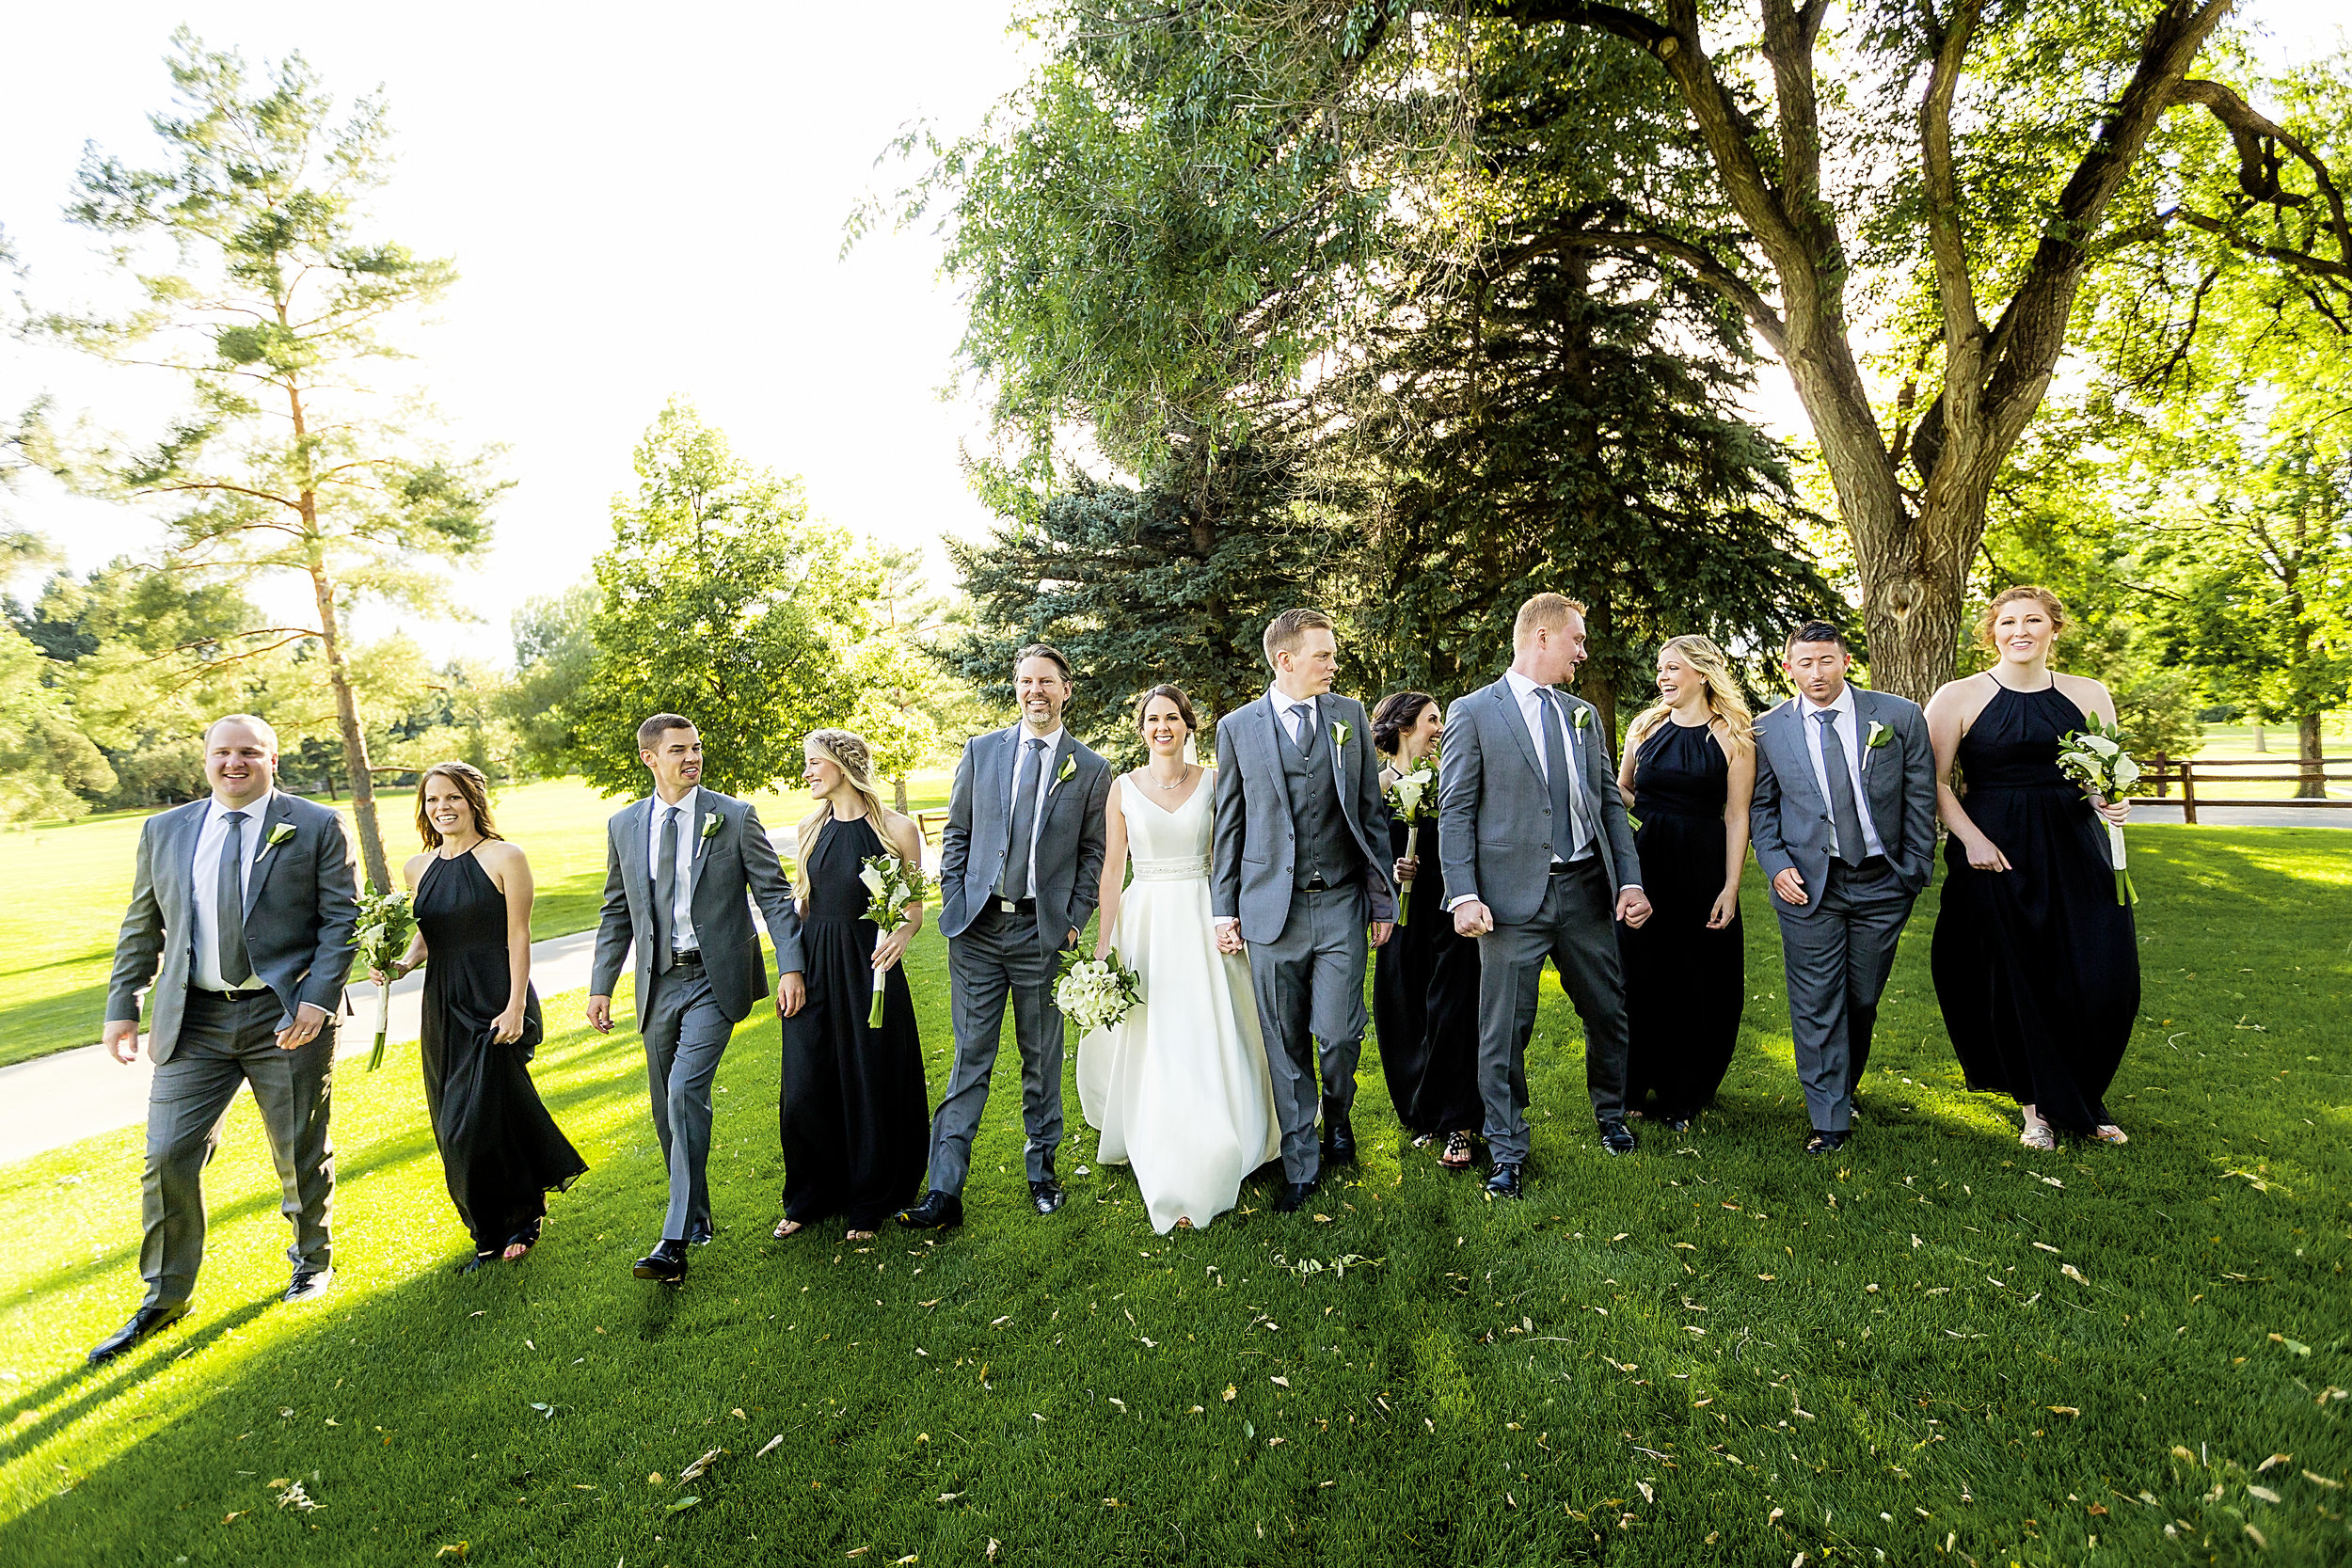 Weddings - $3,200 wedding photography service which includes two photographers, unlimited day-of shooting, an online proofing gallery, and a USB of images with rights to share and print images as you wish.